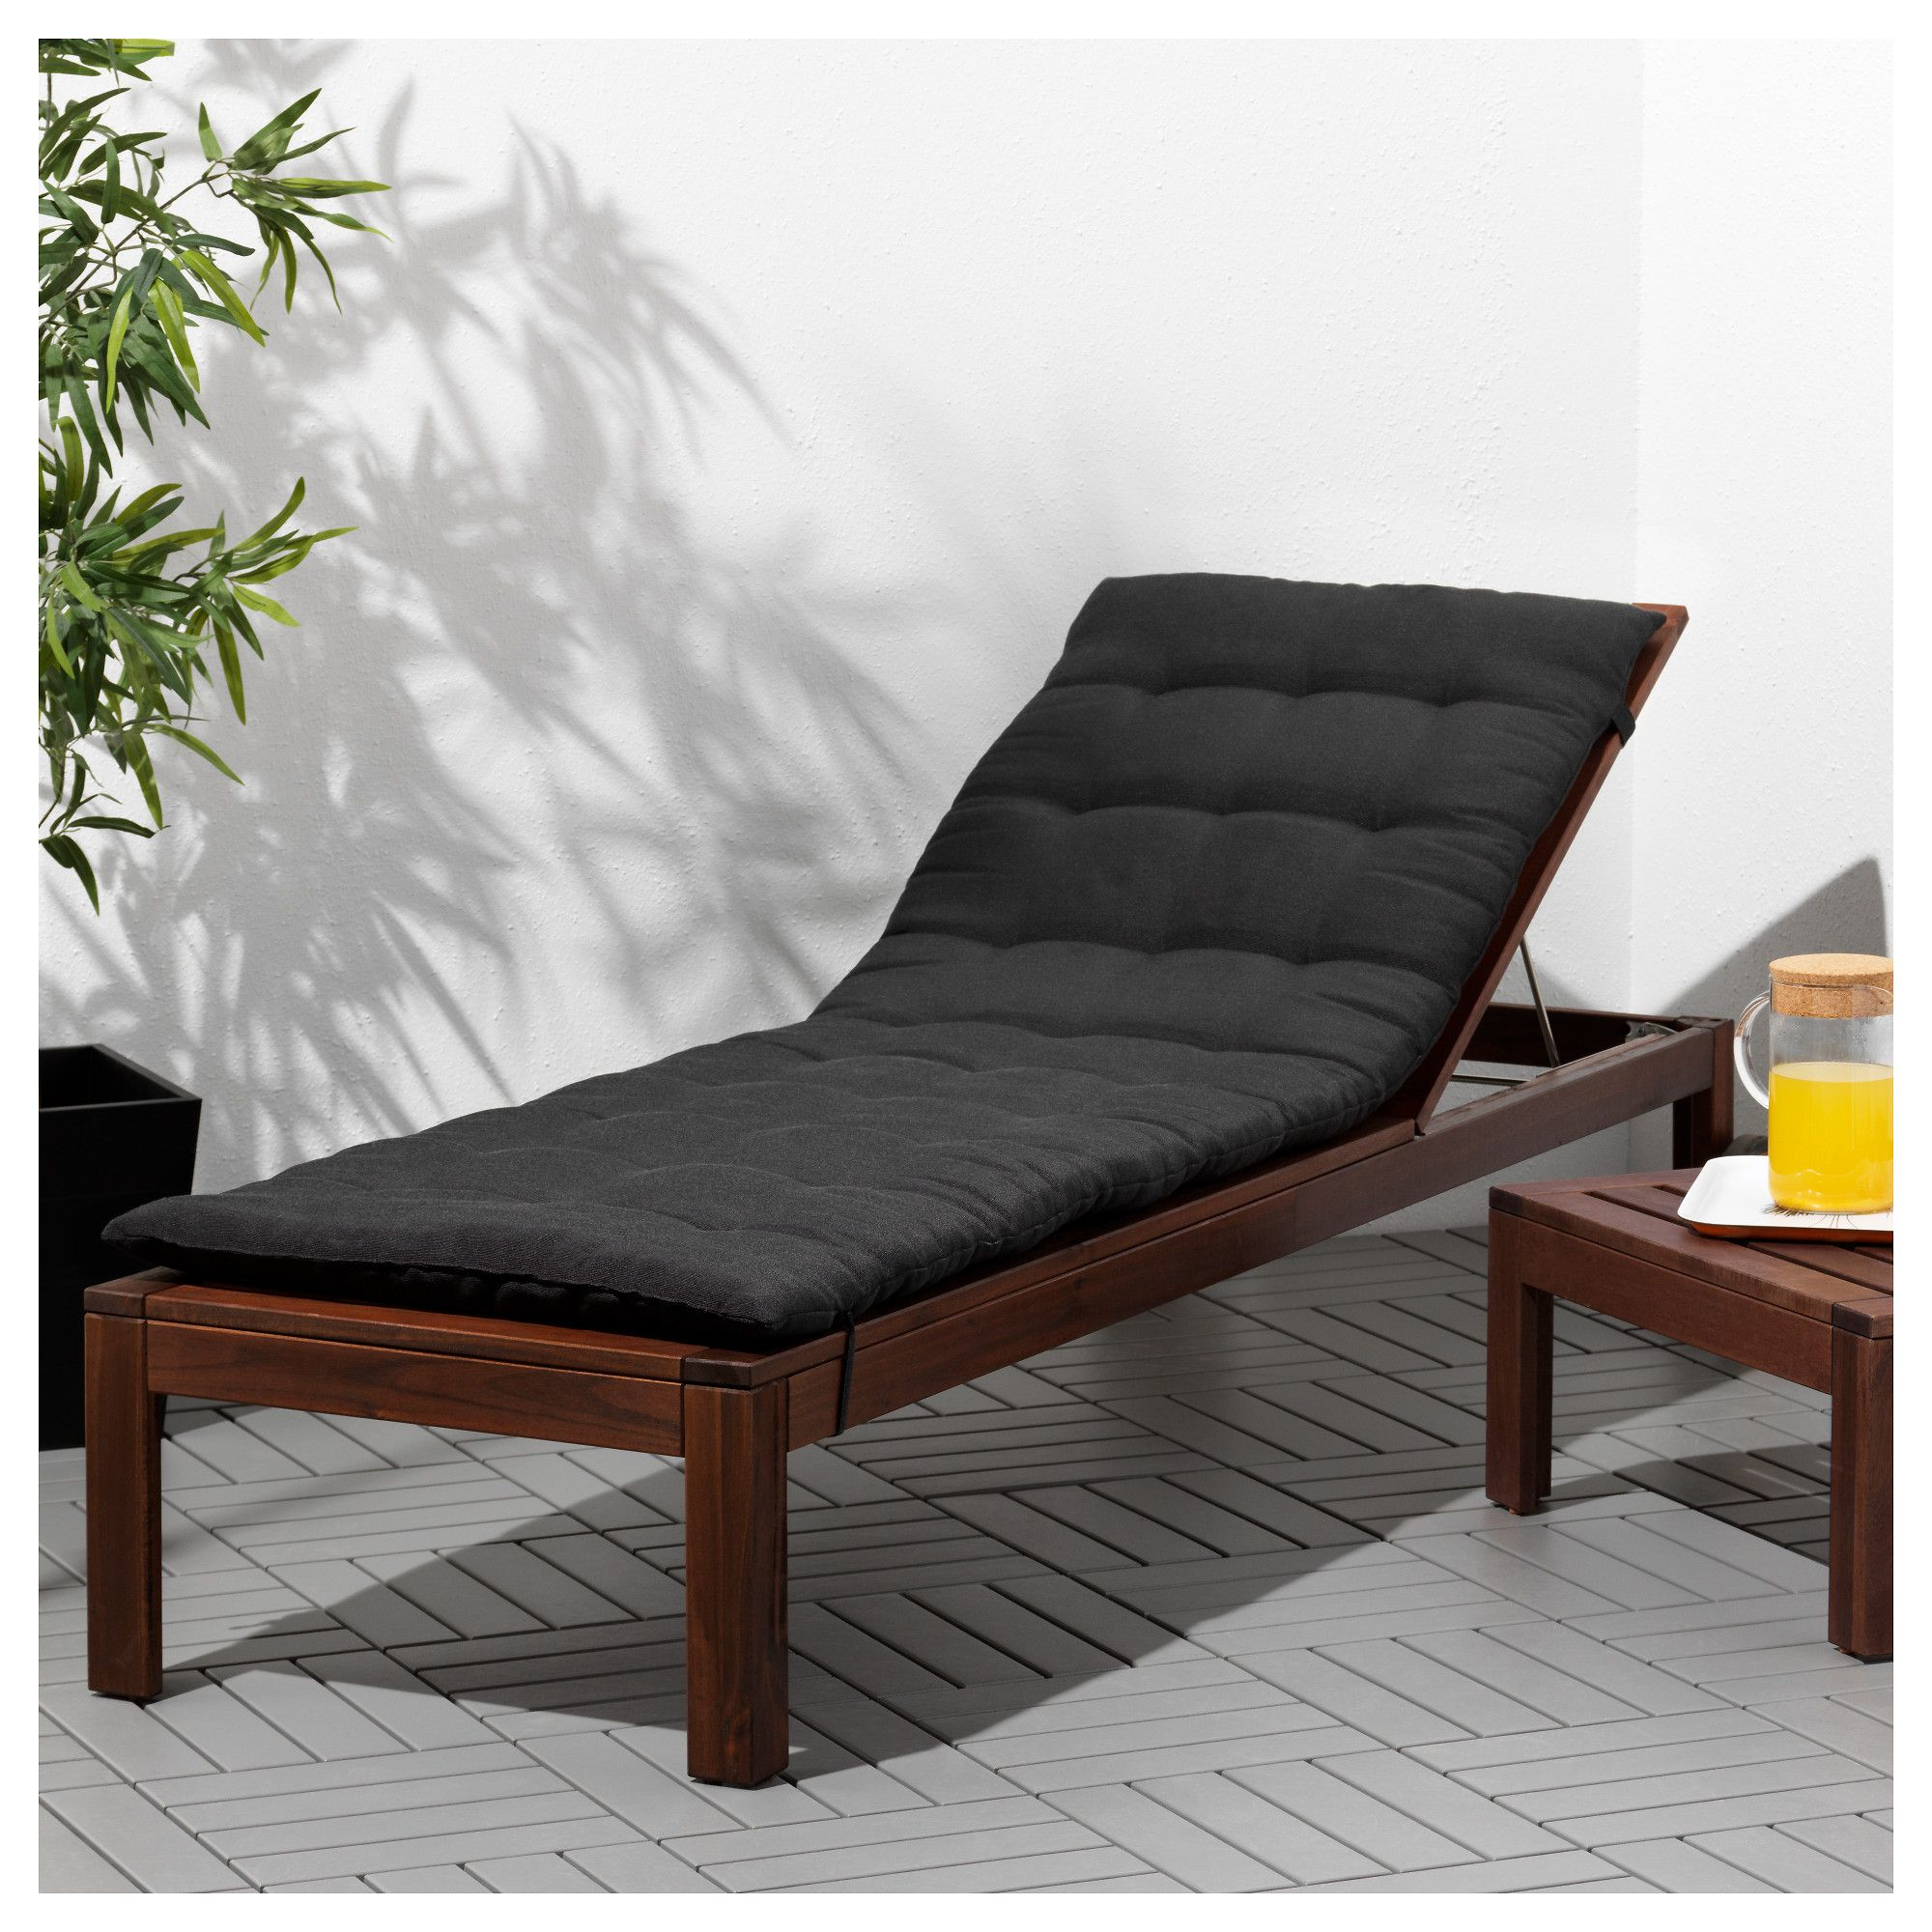 ÄPPLARÖ Chaise lounger - brown stained - IKEA  Sun lounger